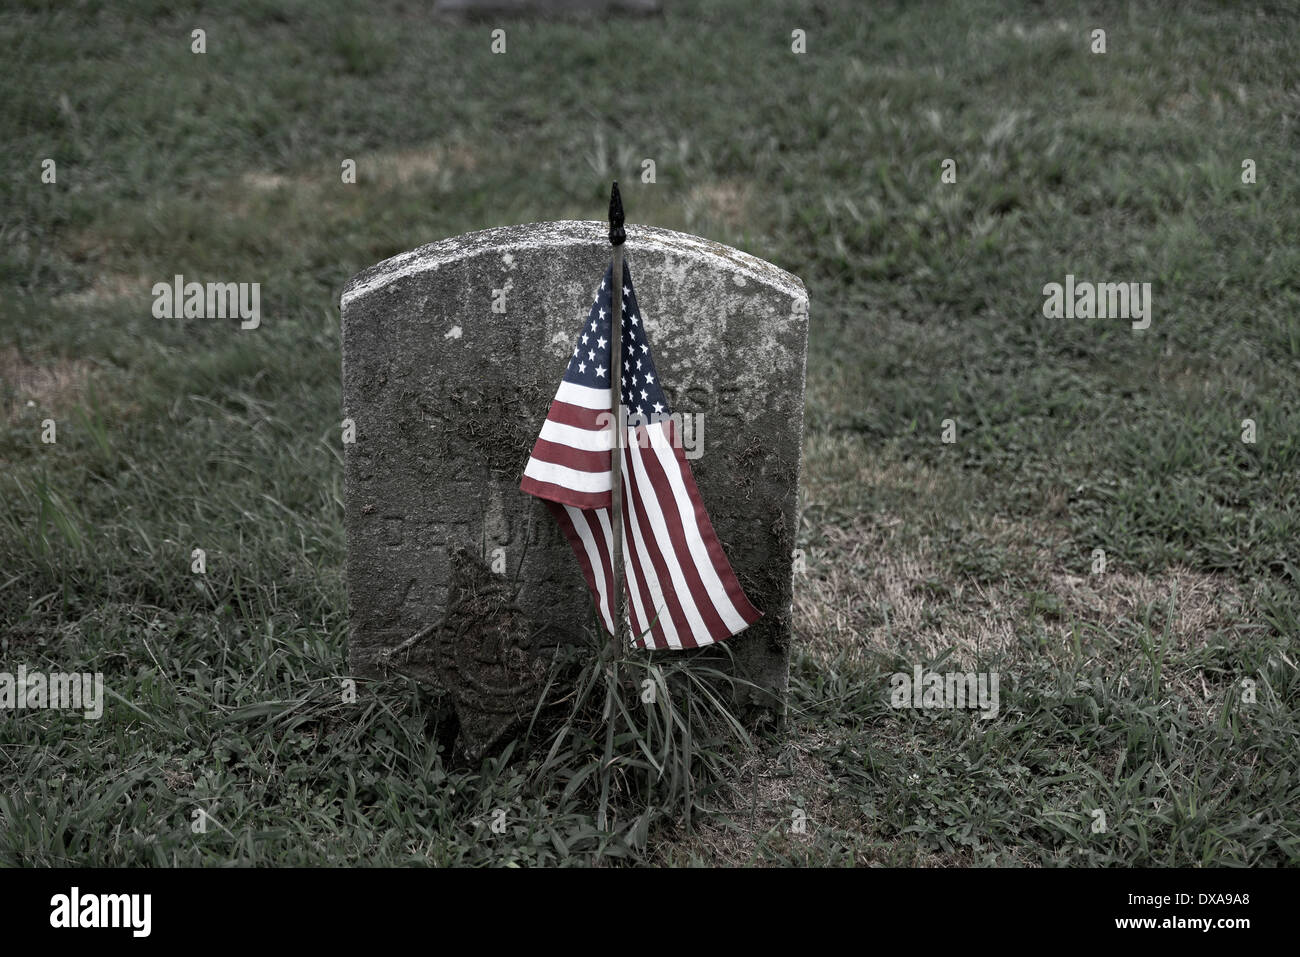 Grave markers of veteran soldier, USA - Stock Image